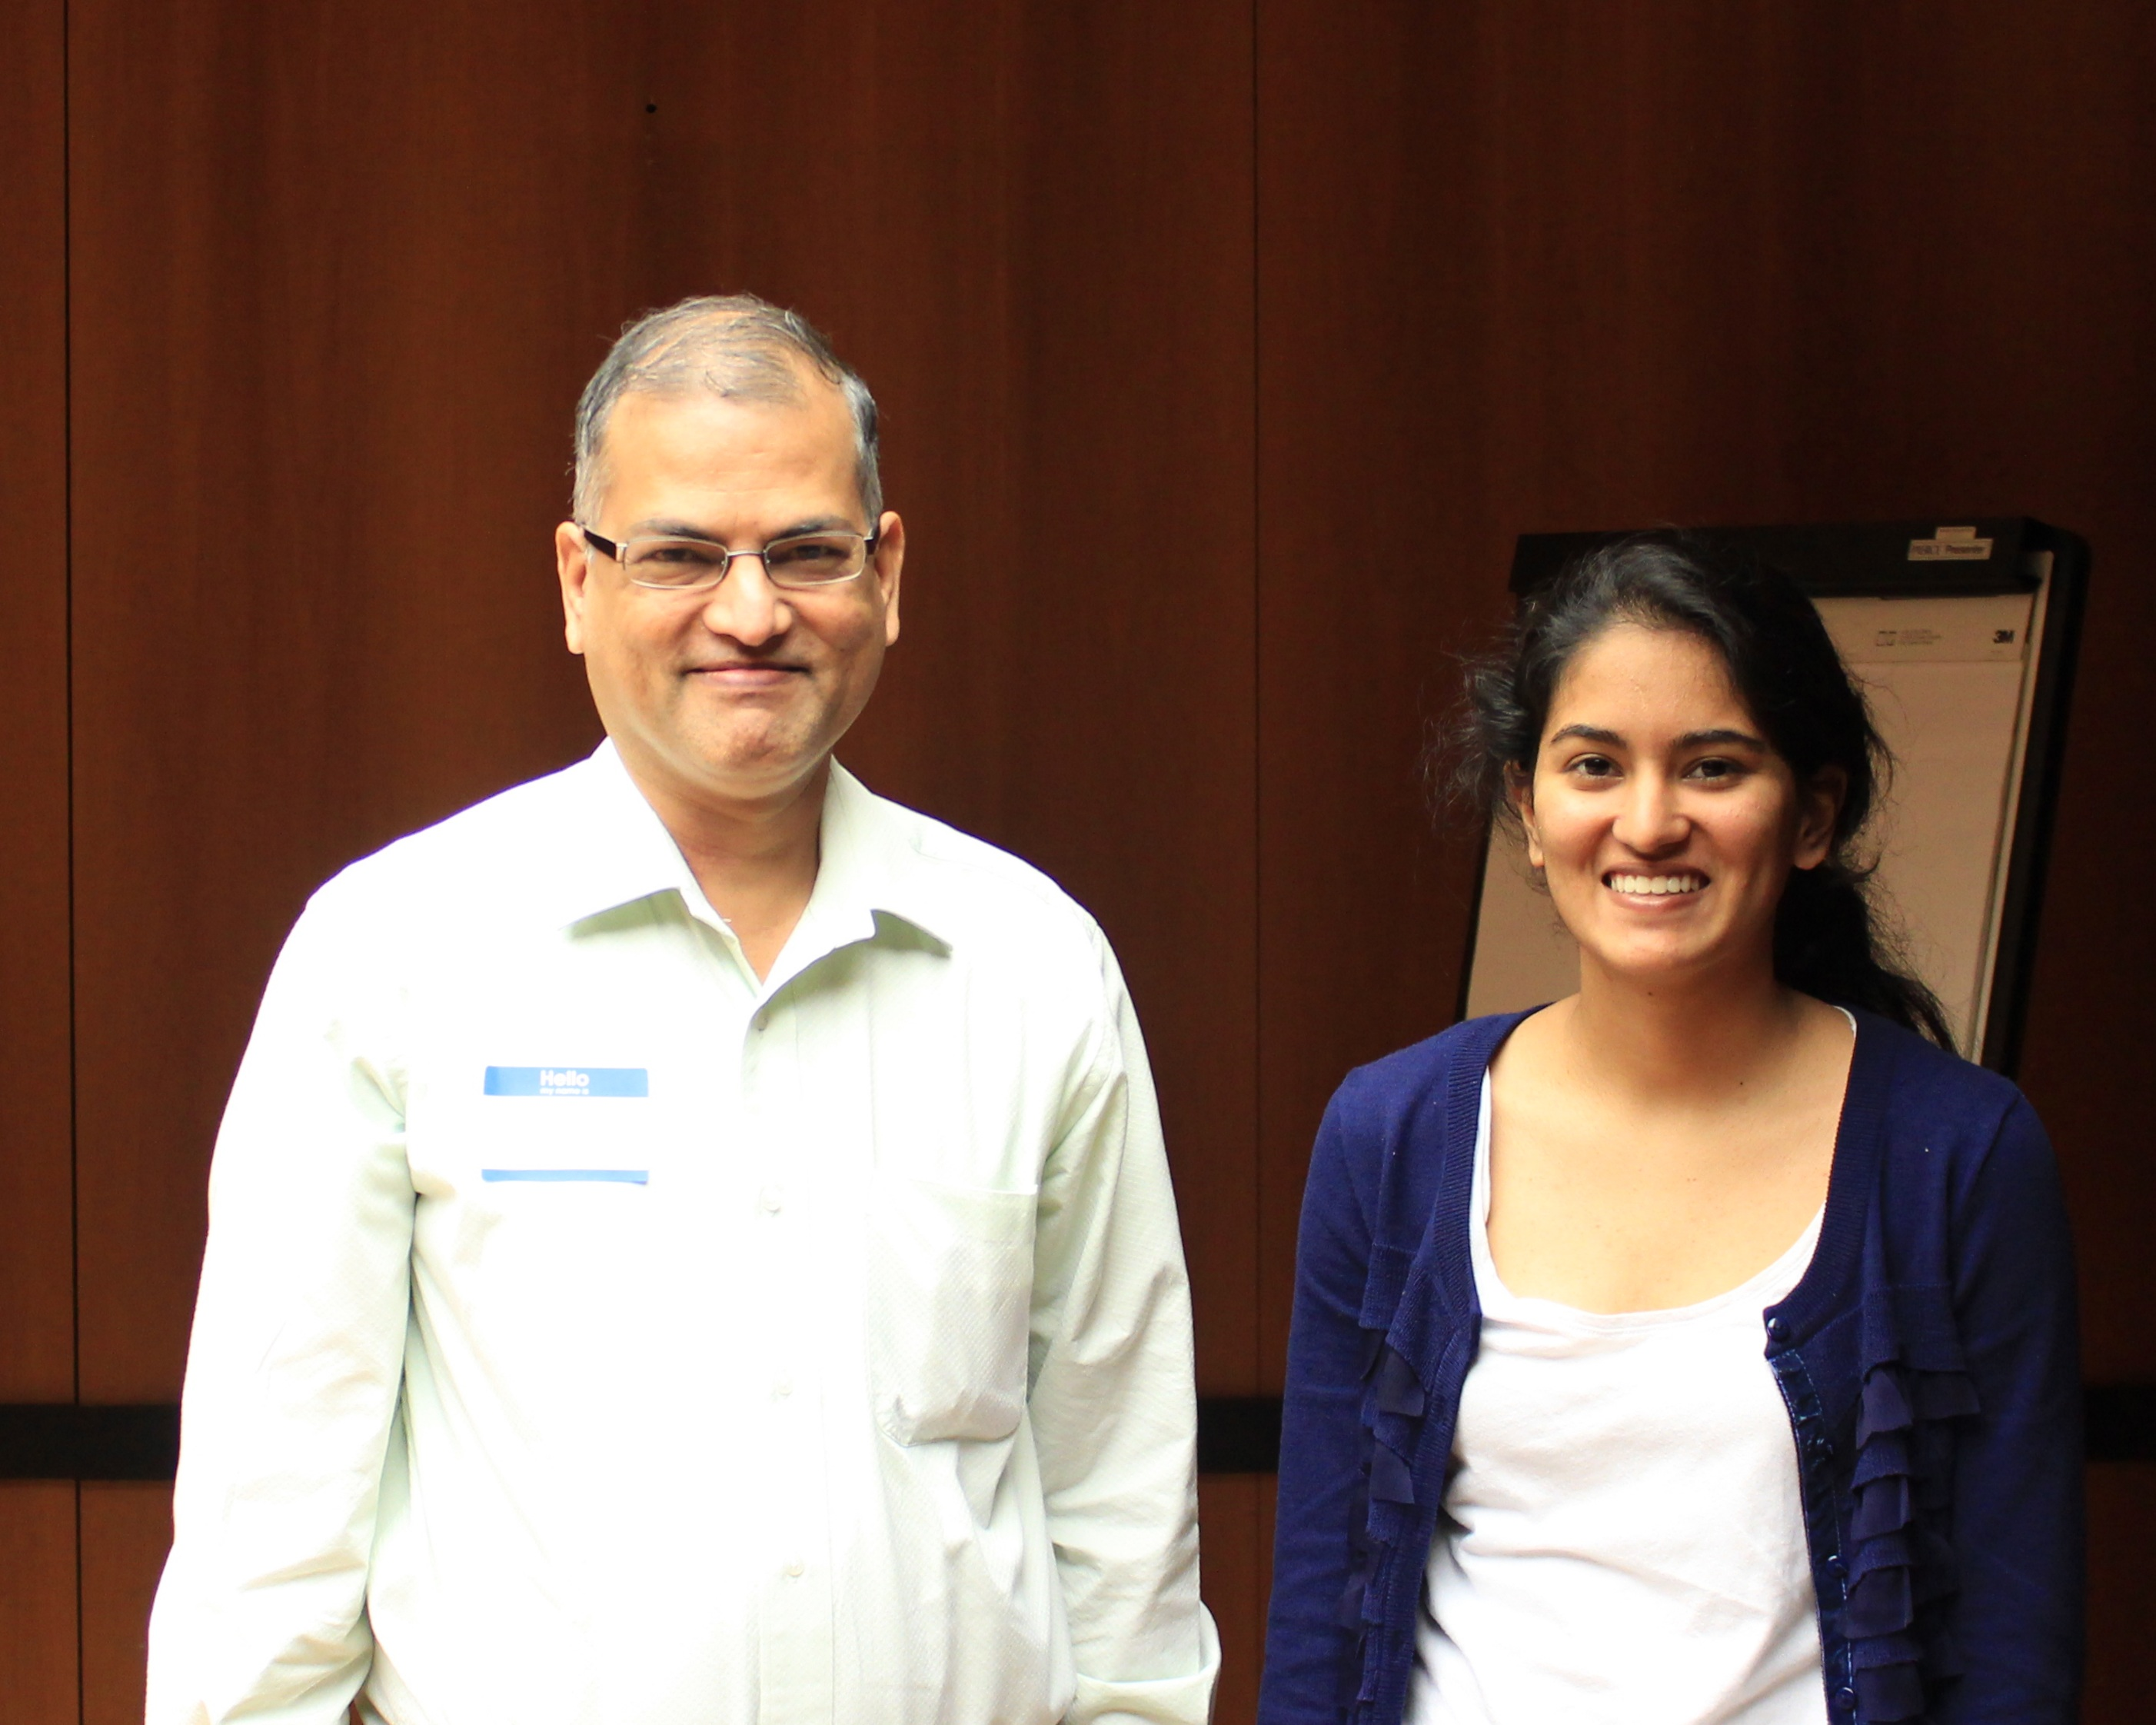 Dr. Srini Dharmapuri (Michael Baker Jr.) with his daughter, Sneha Srinivasan.